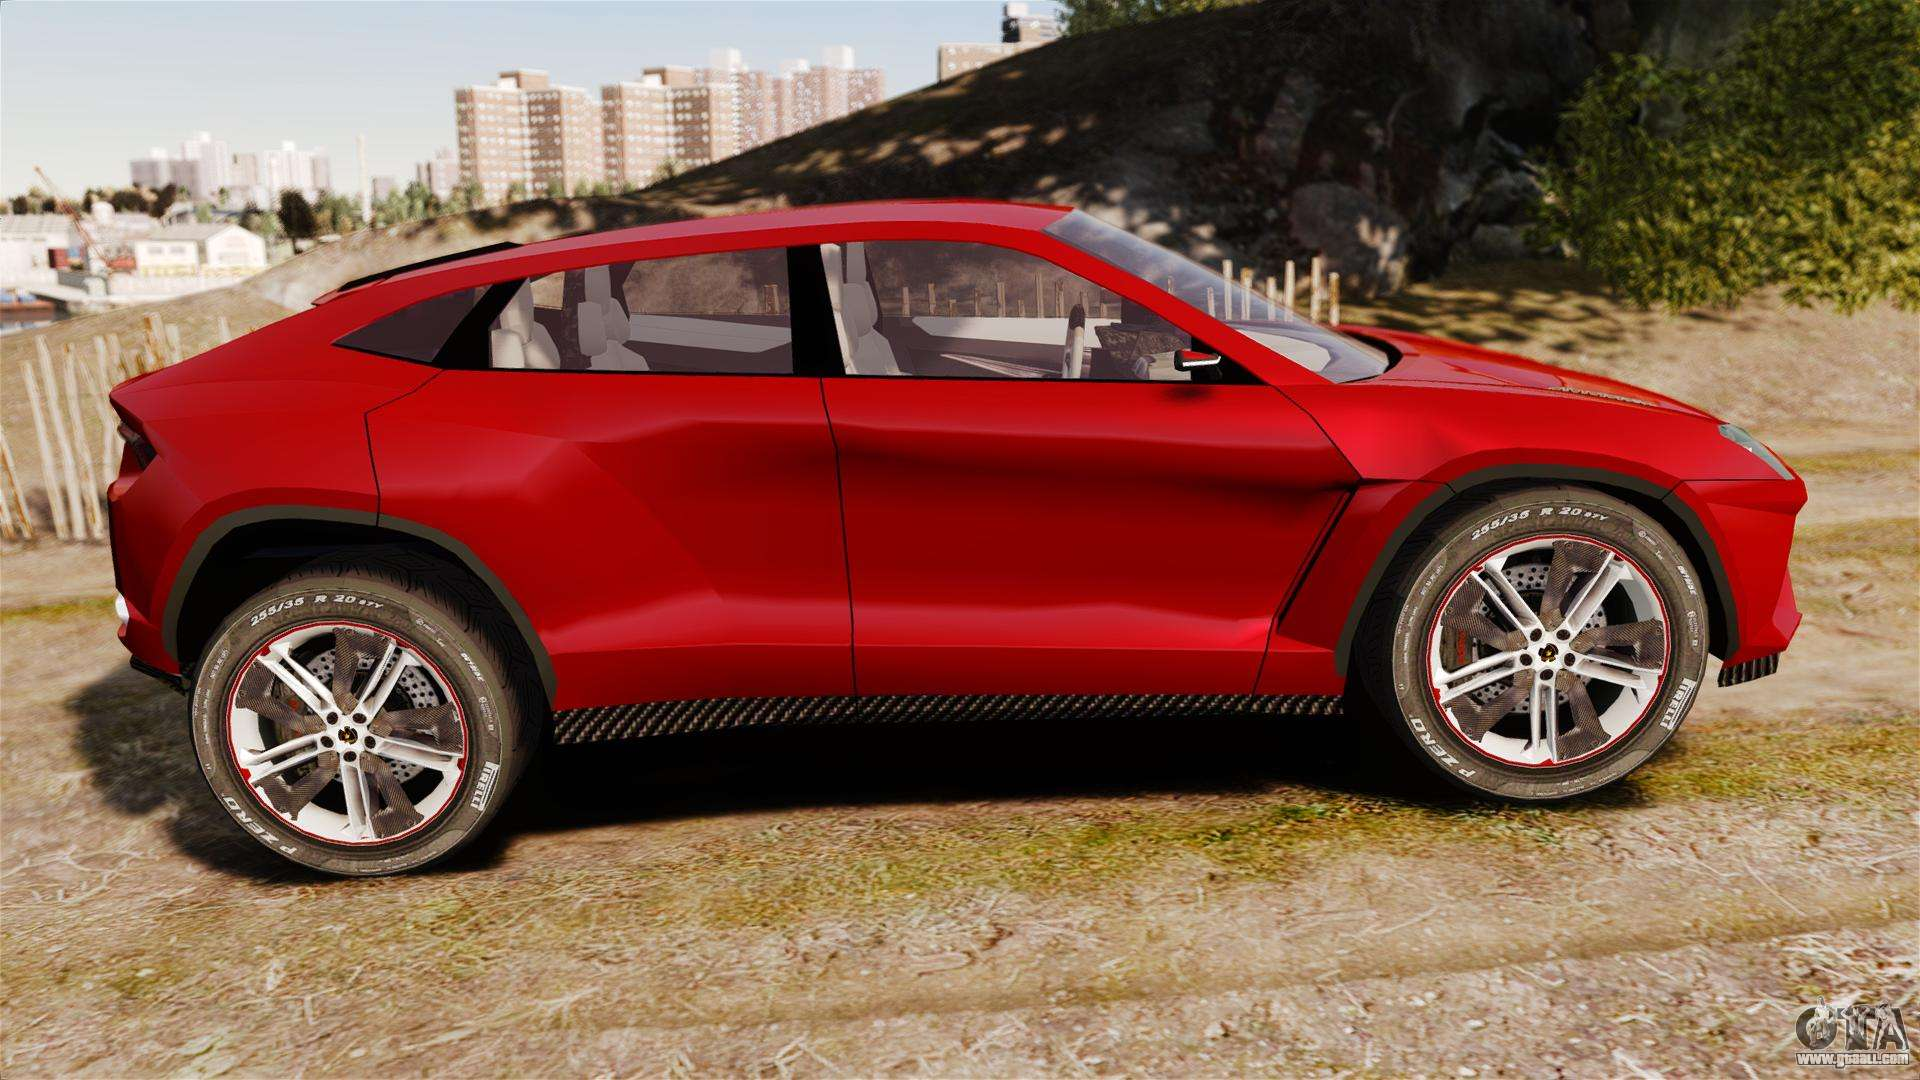 lamborghini urus model with 39668 Lamborghini Urus Lp840 2015 on Photos moreover First Drive likewise Aventador S Roadster likewise Revealed Volvo Xc Coupe Concept together with 2016 Range Rover Supercharged Calgary Ab.